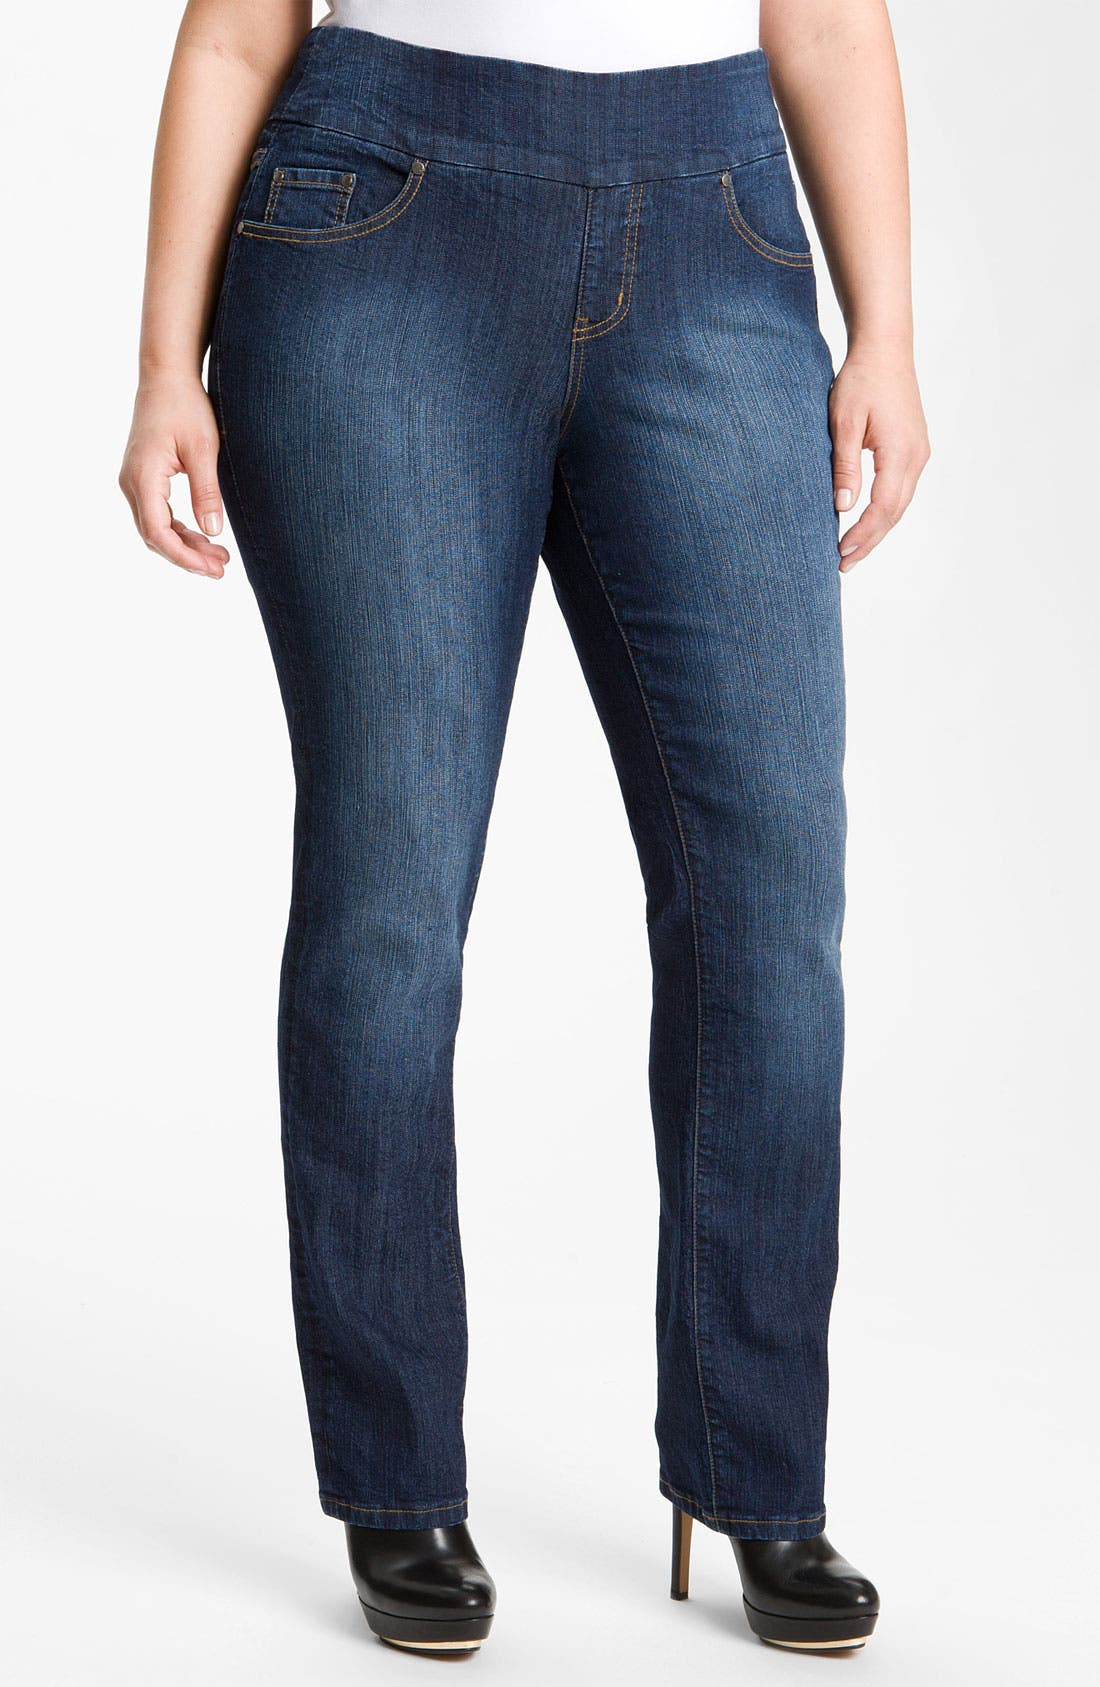 Alternate Image 1 Selected - Jag Jeans 'Peri' Straight Leg Jeans (Plus Size)